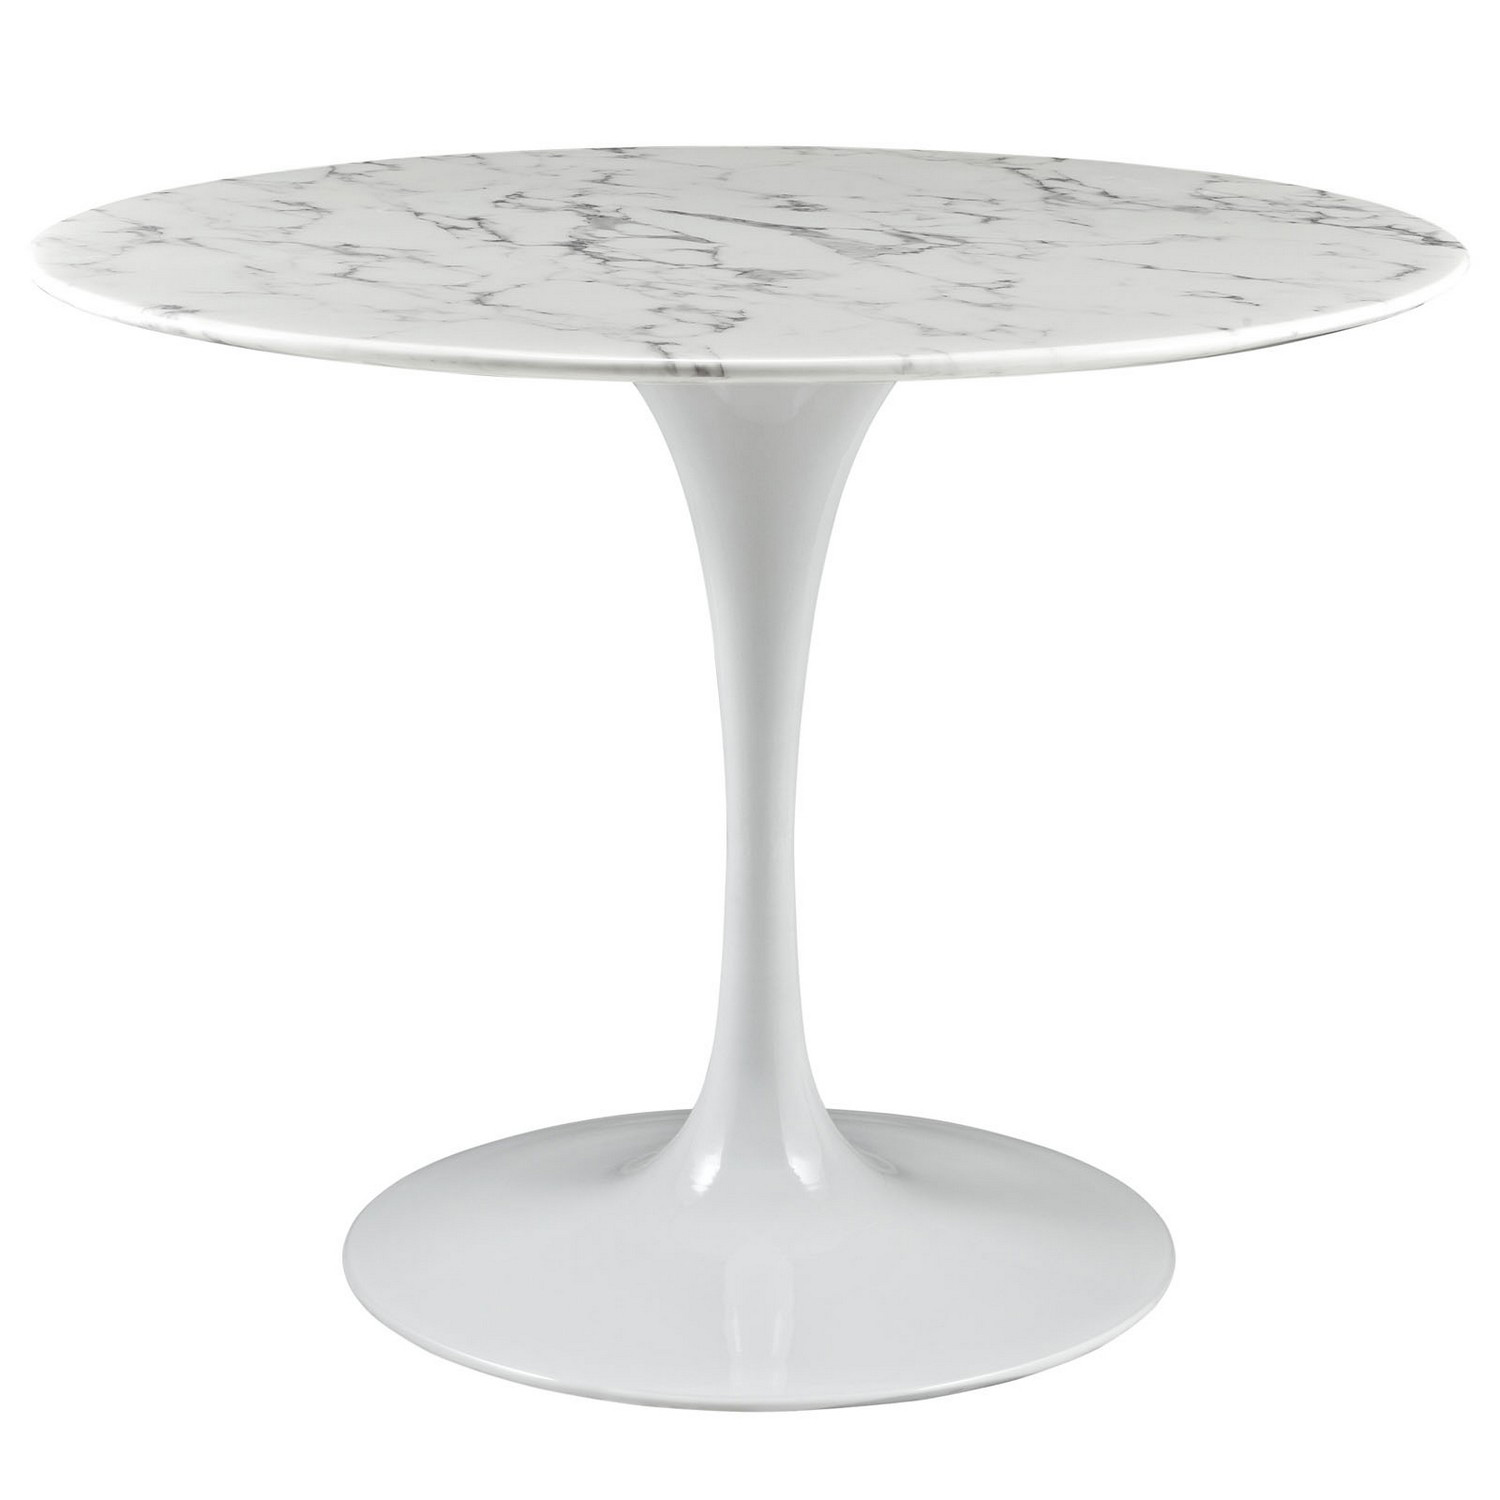 Modway Lippa 40 Artificial Marble Dining Table - White